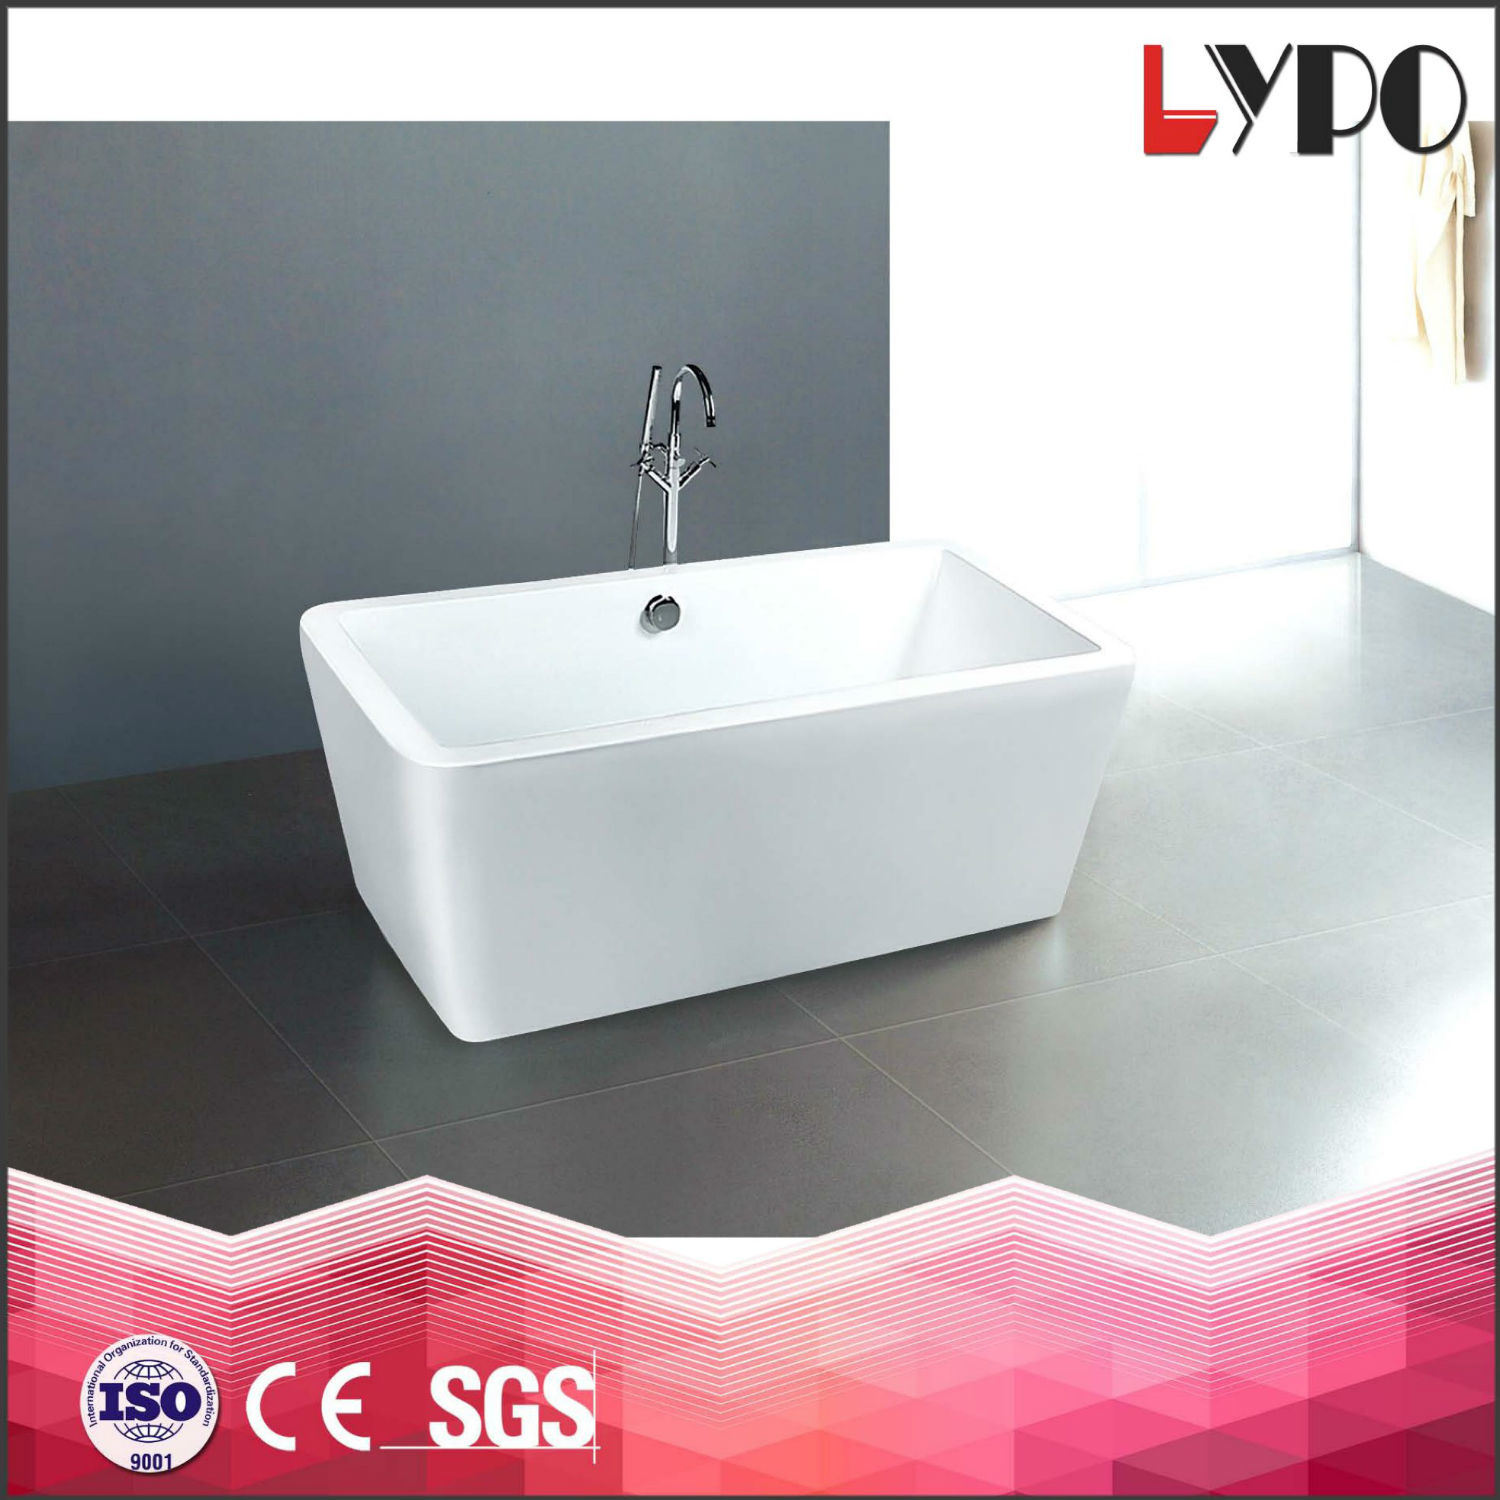 showroom manufacturers alibaba com long copper with cheap suppliers reliable at bathtub and